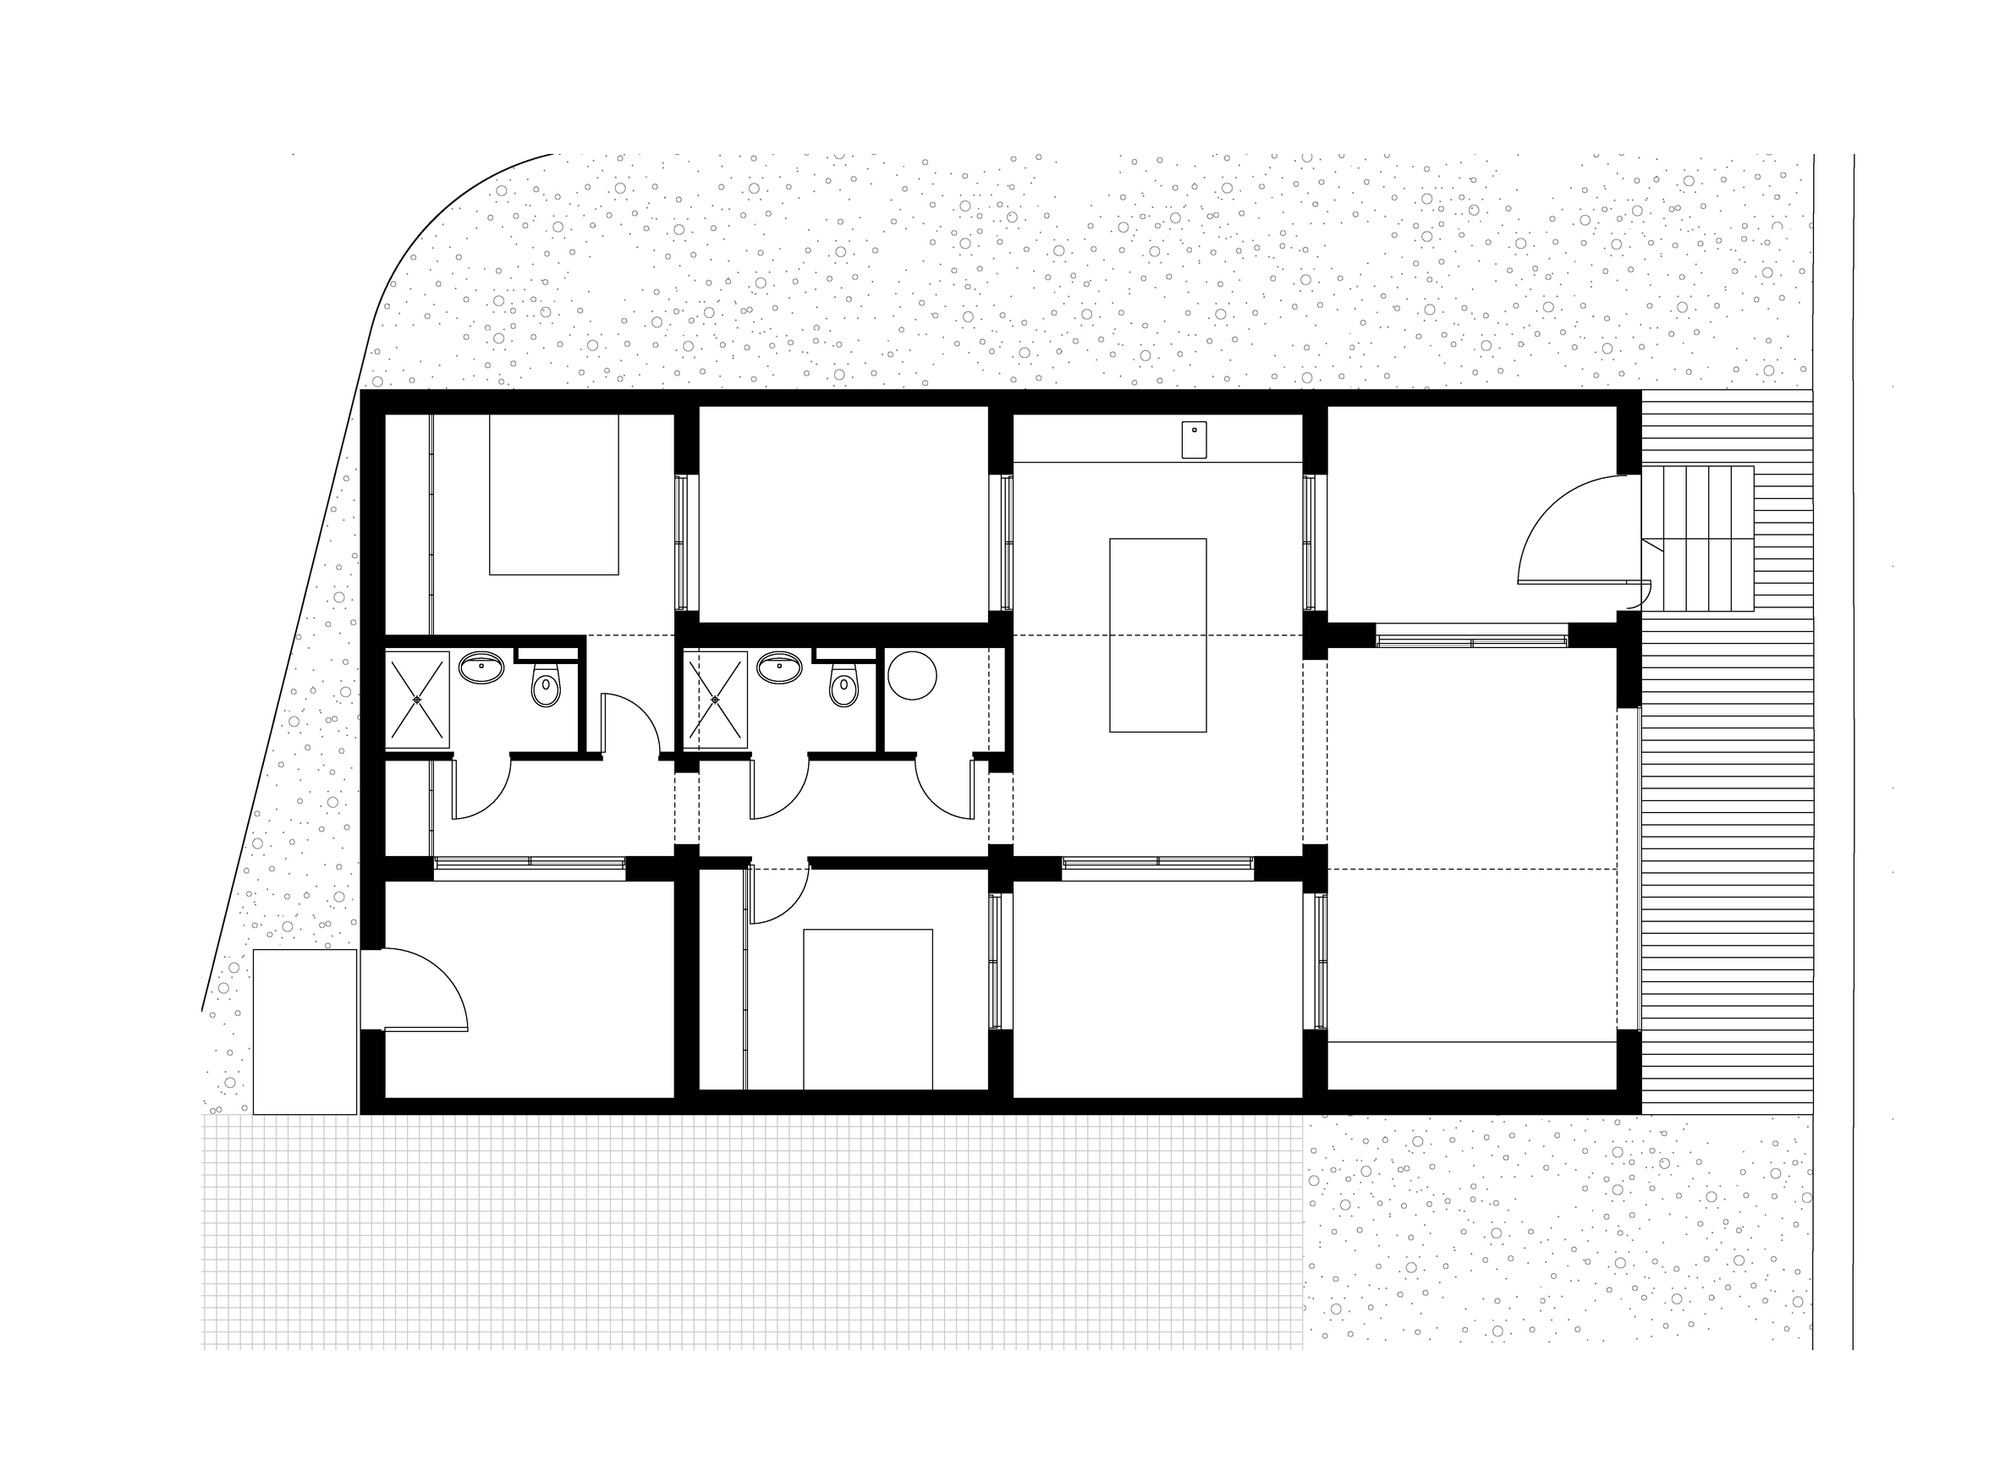 Gallery Of House Plans Under 100 Square Meters: 30 Useful